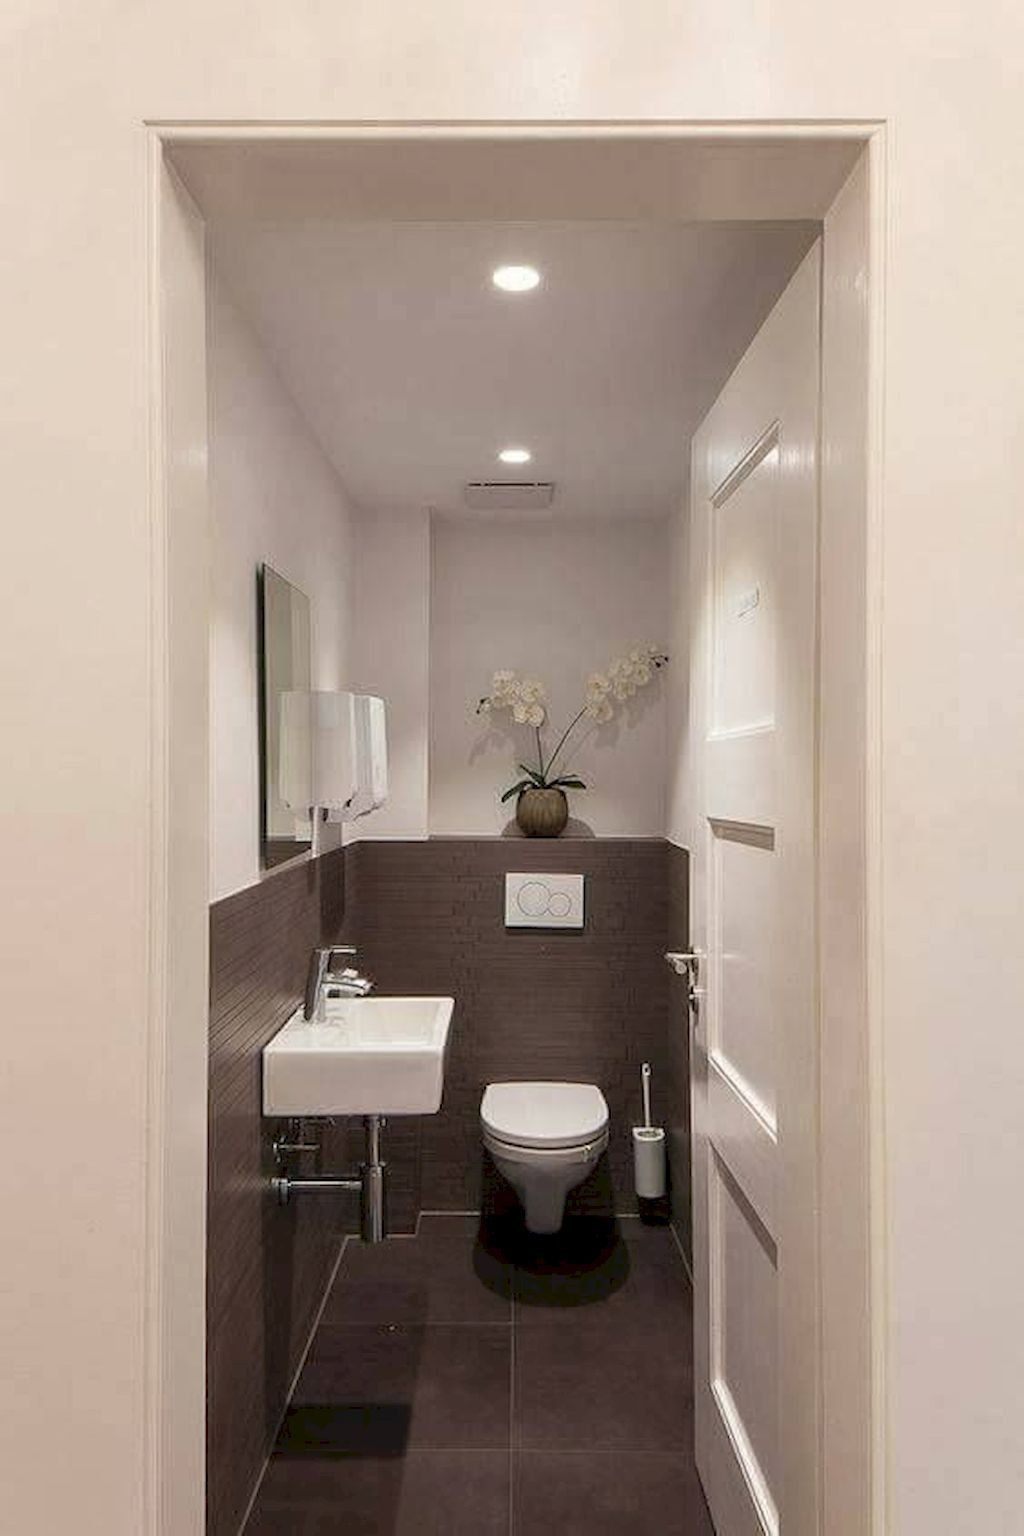 Space Saving Toilet Design For Small Bathroom Home To Z Small Toilet Room Toilet Design Bathroom Interior